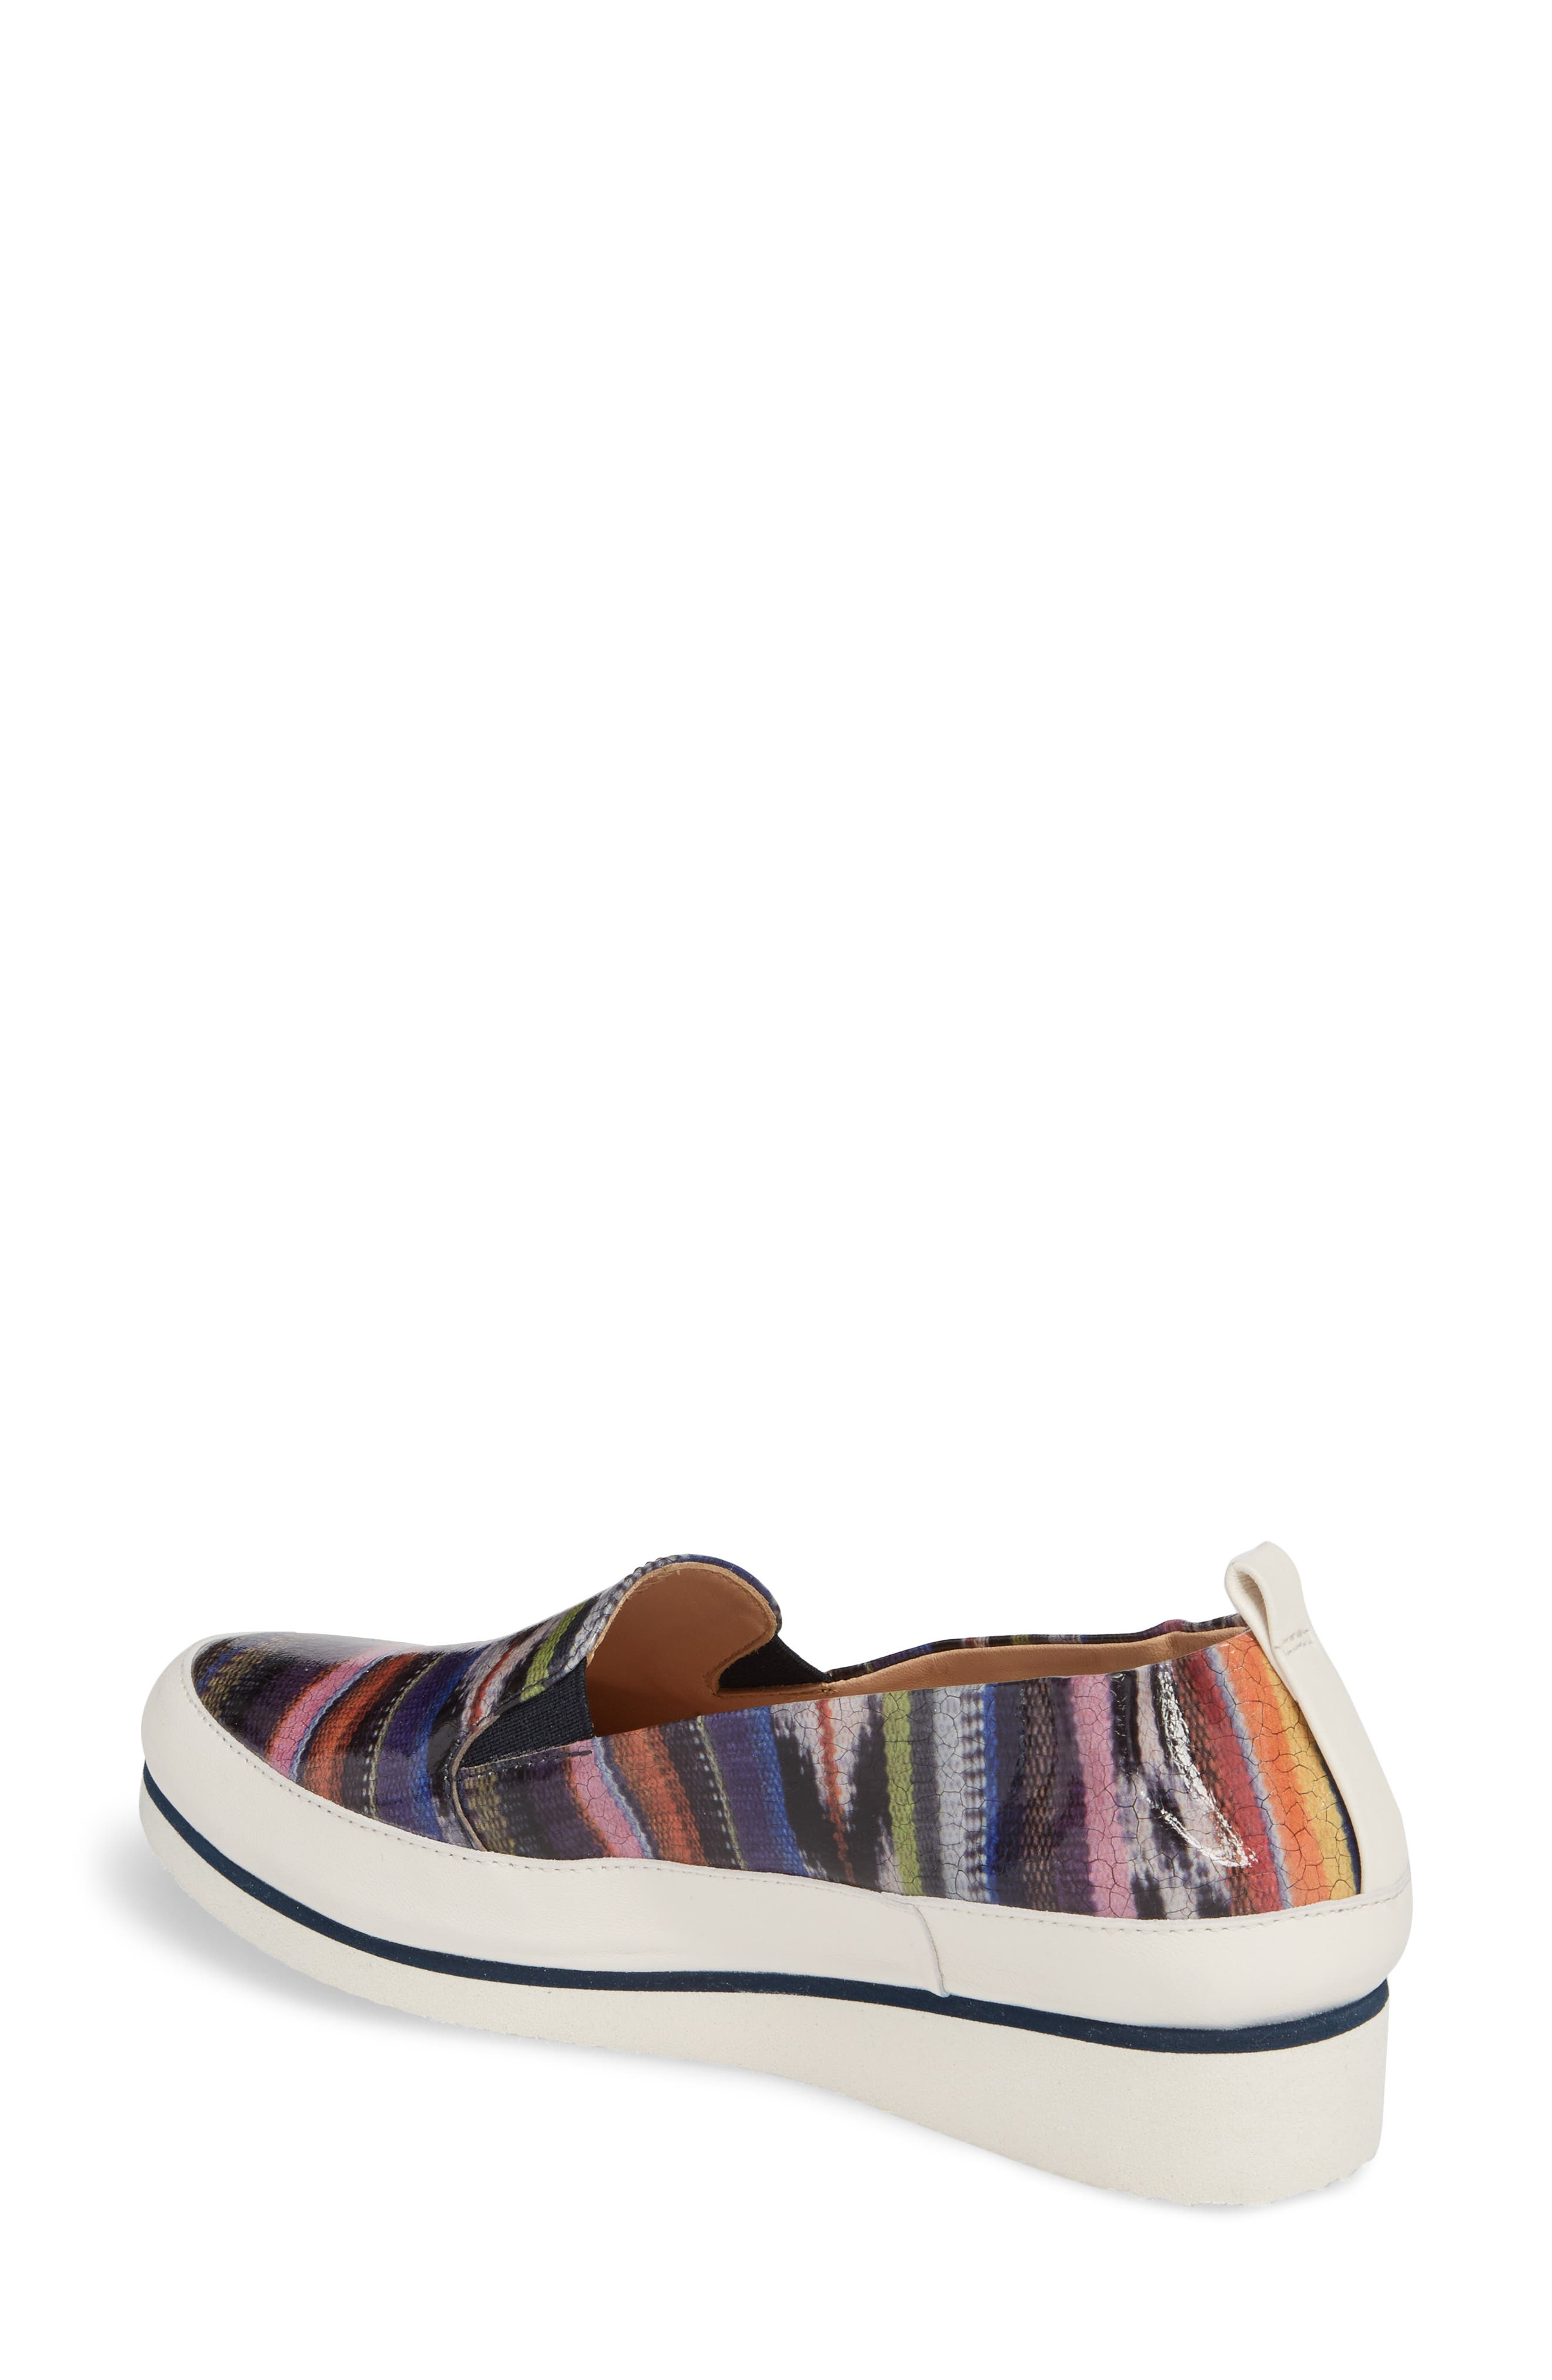 Nell Slip-On Sneaker,                             Alternate thumbnail 9, color,